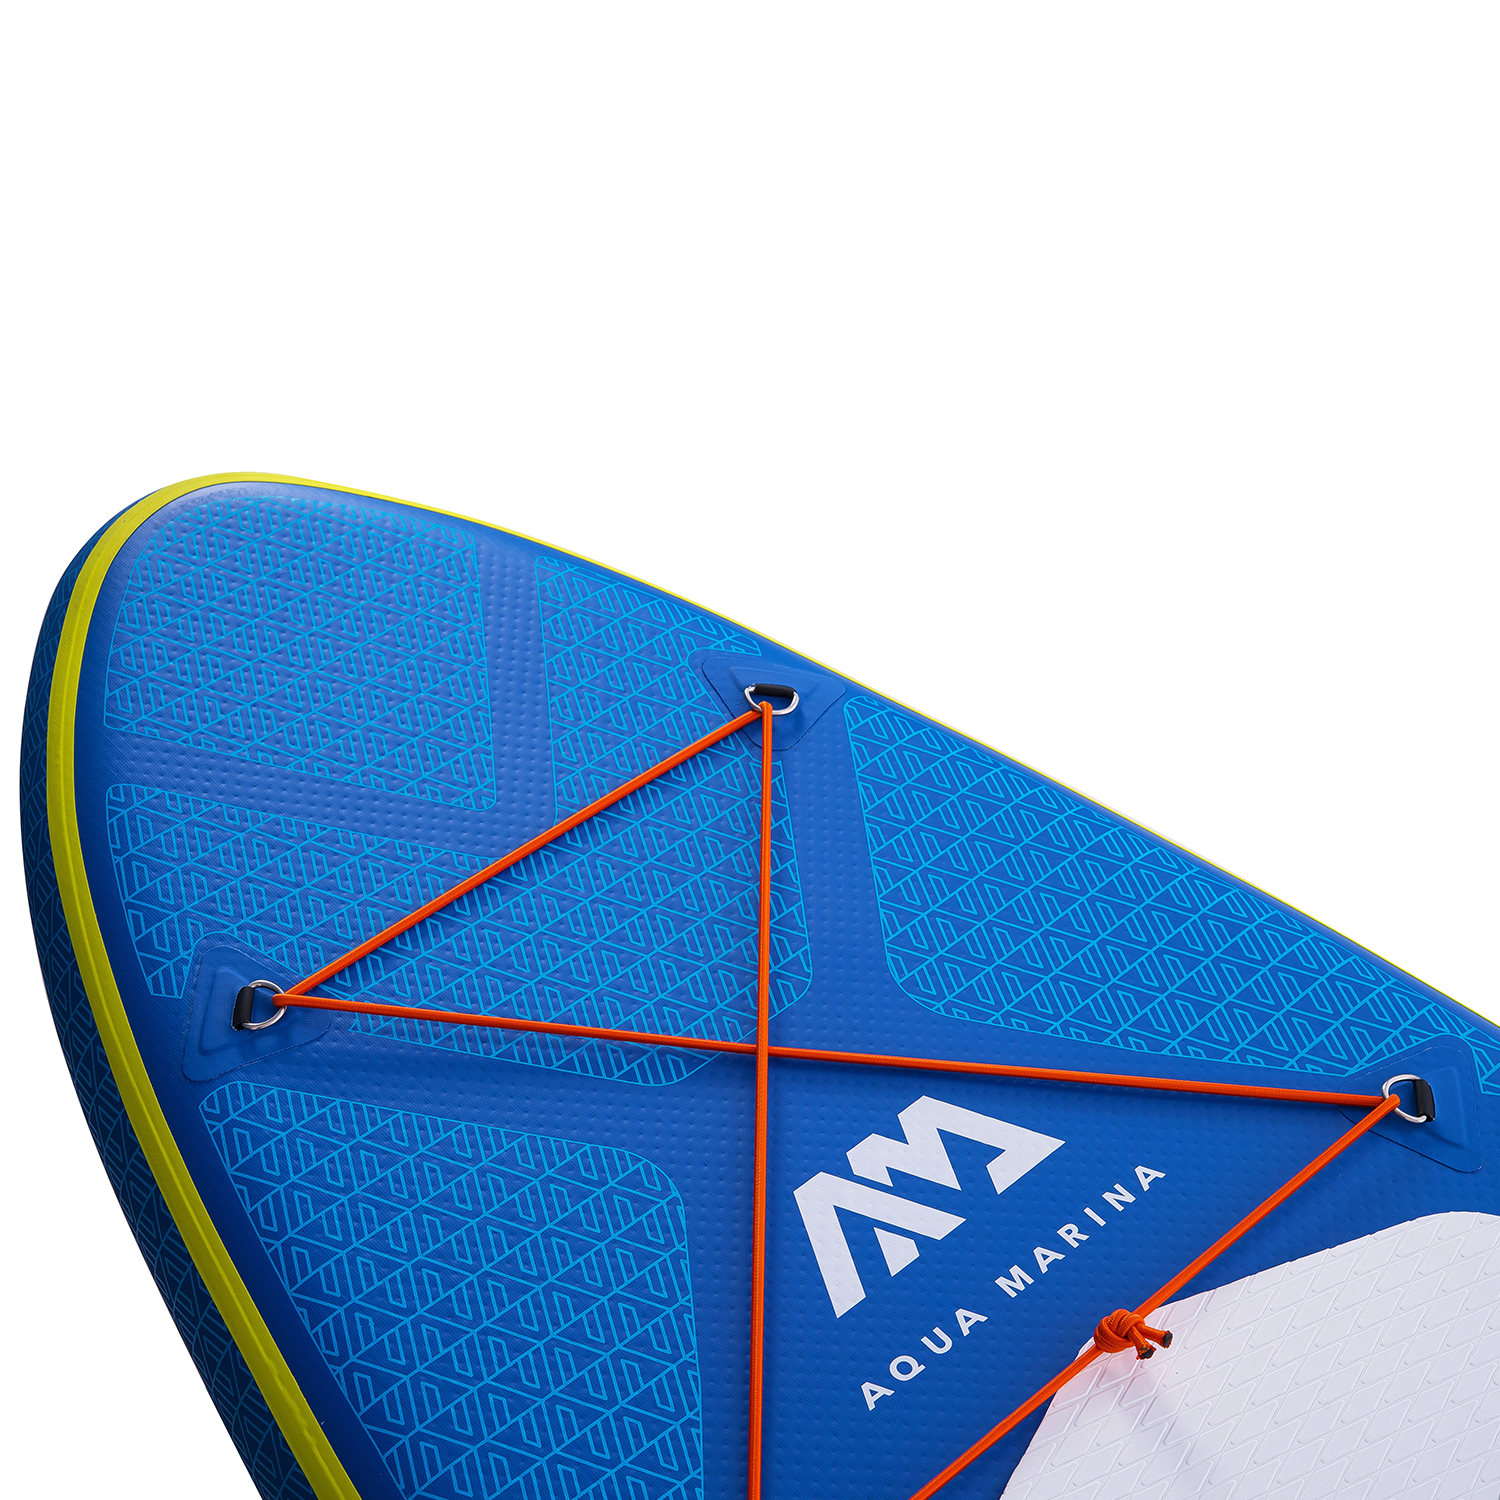 10 Aqua Marina Inflatable Stand Up Paddle Board With